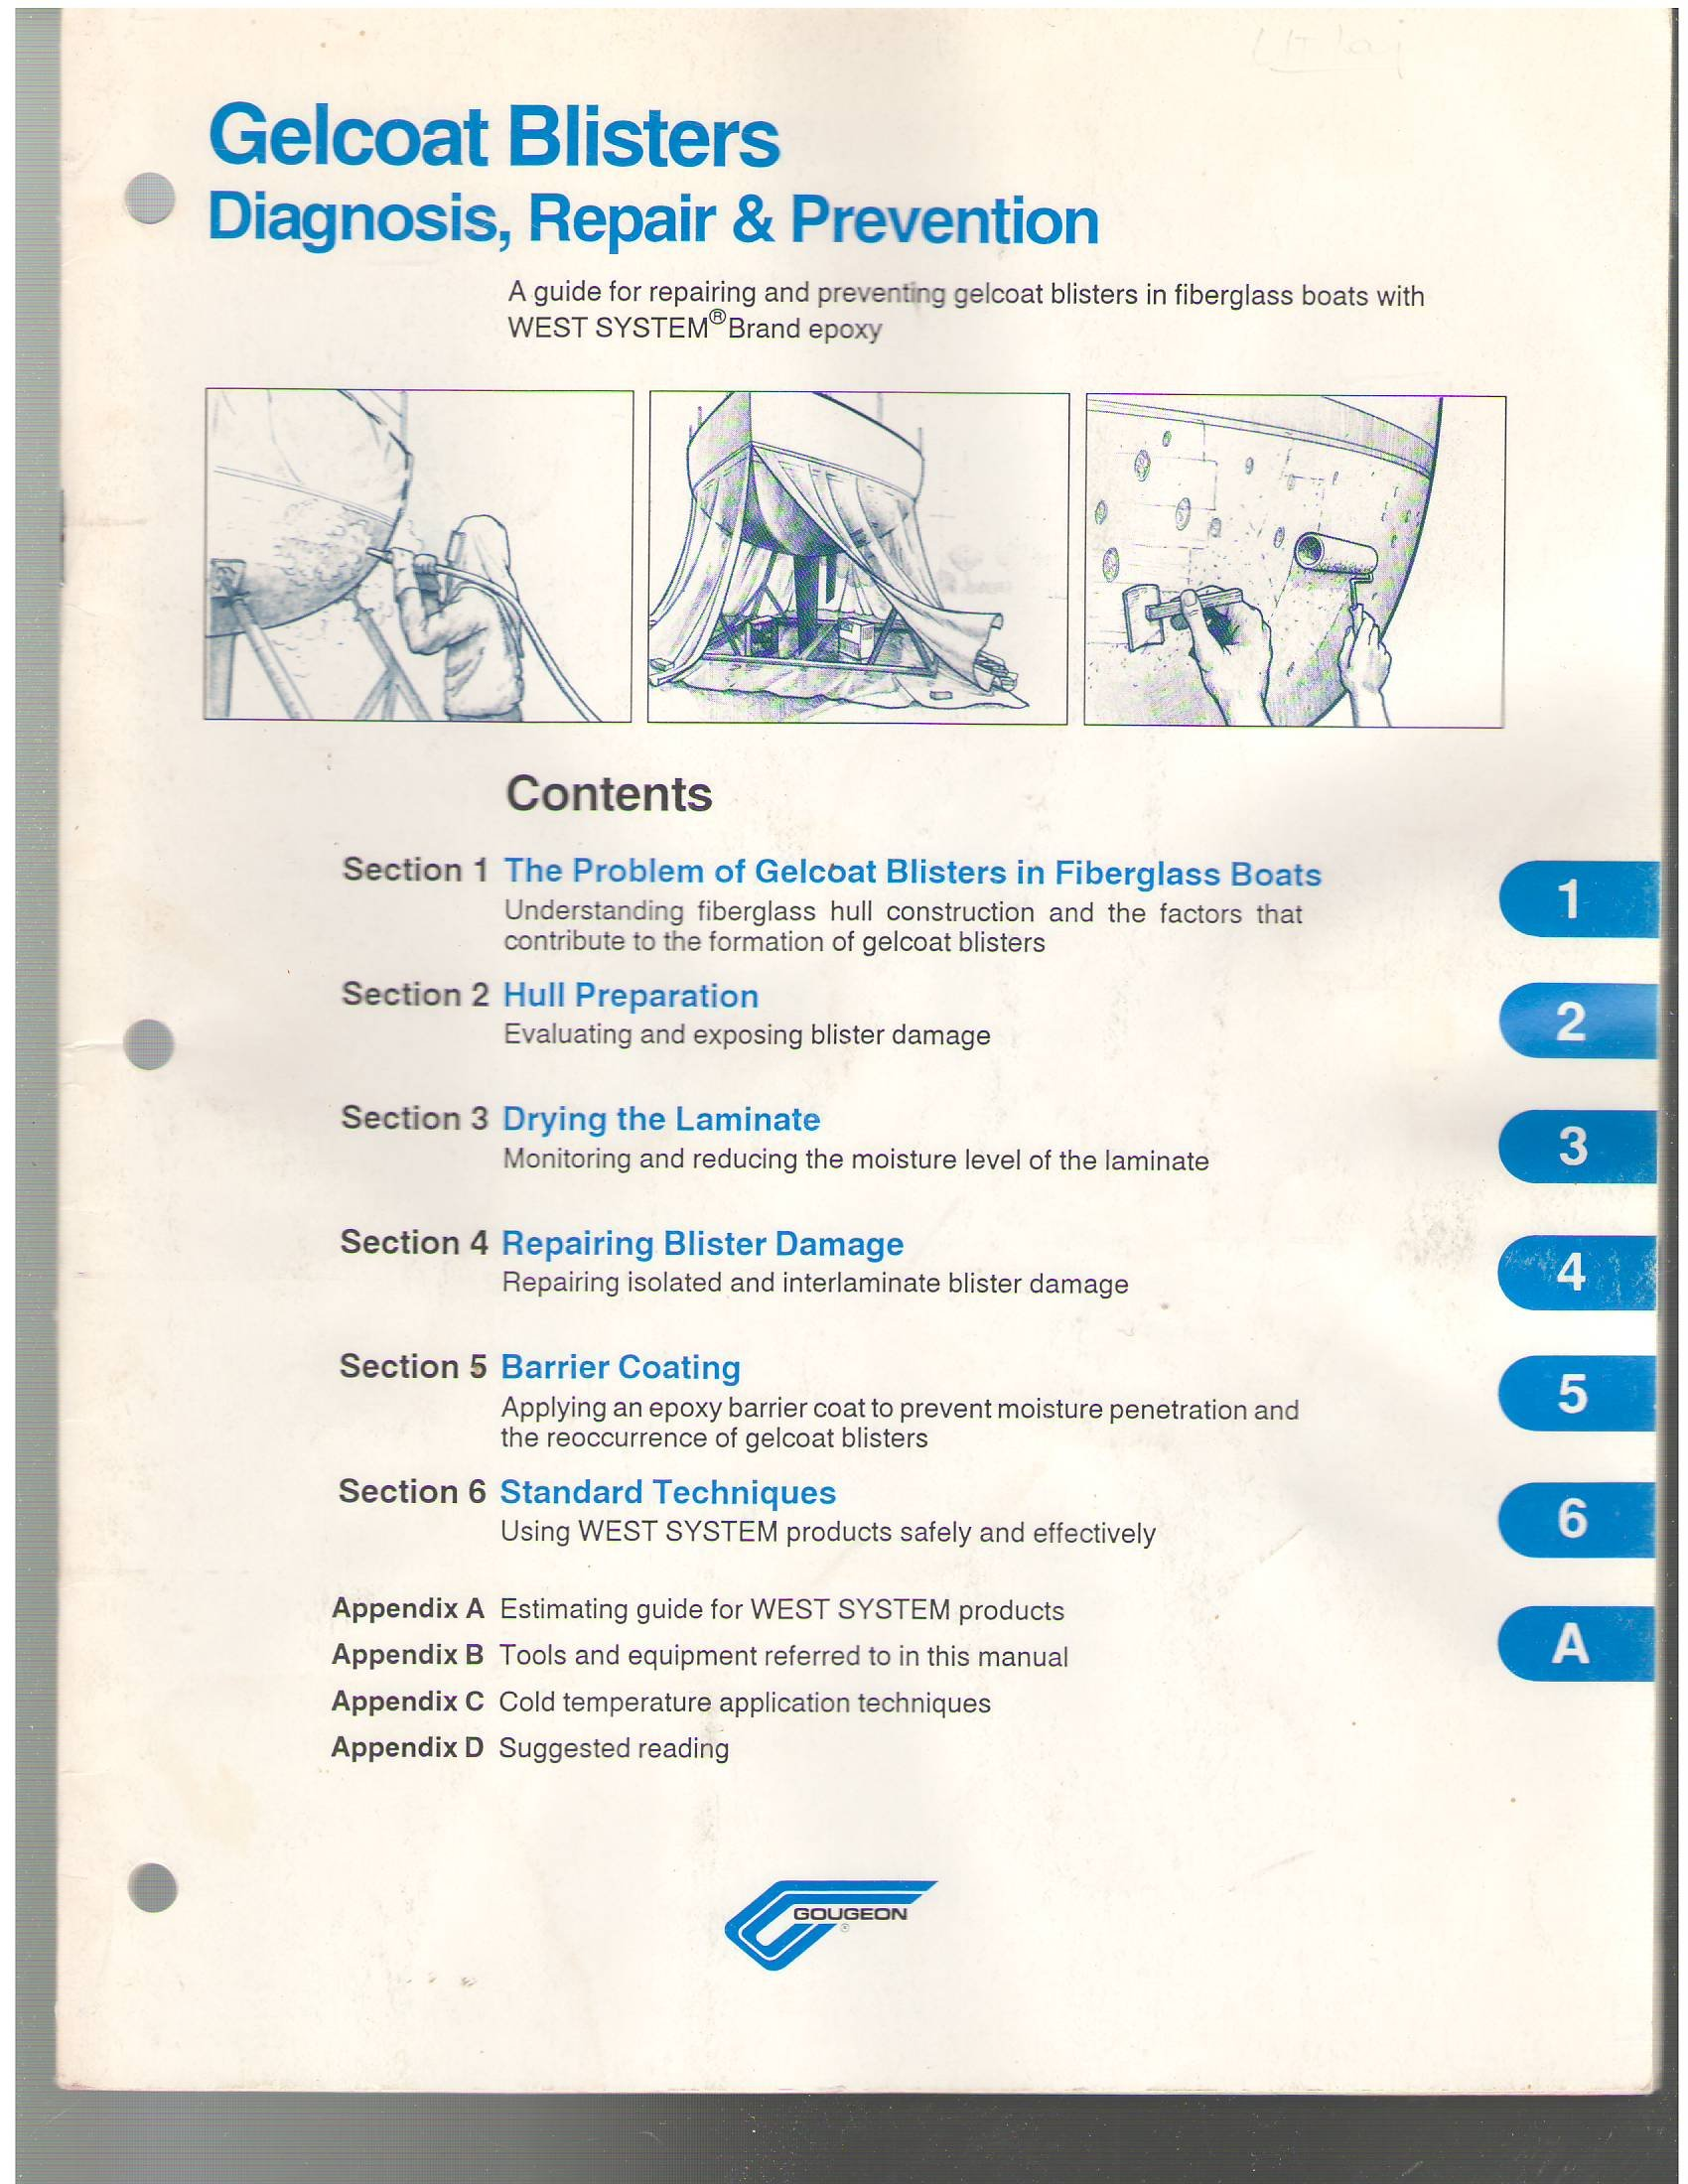 Gelcoat Blisters (Diagnosis, Repair & Prevention, 002-650